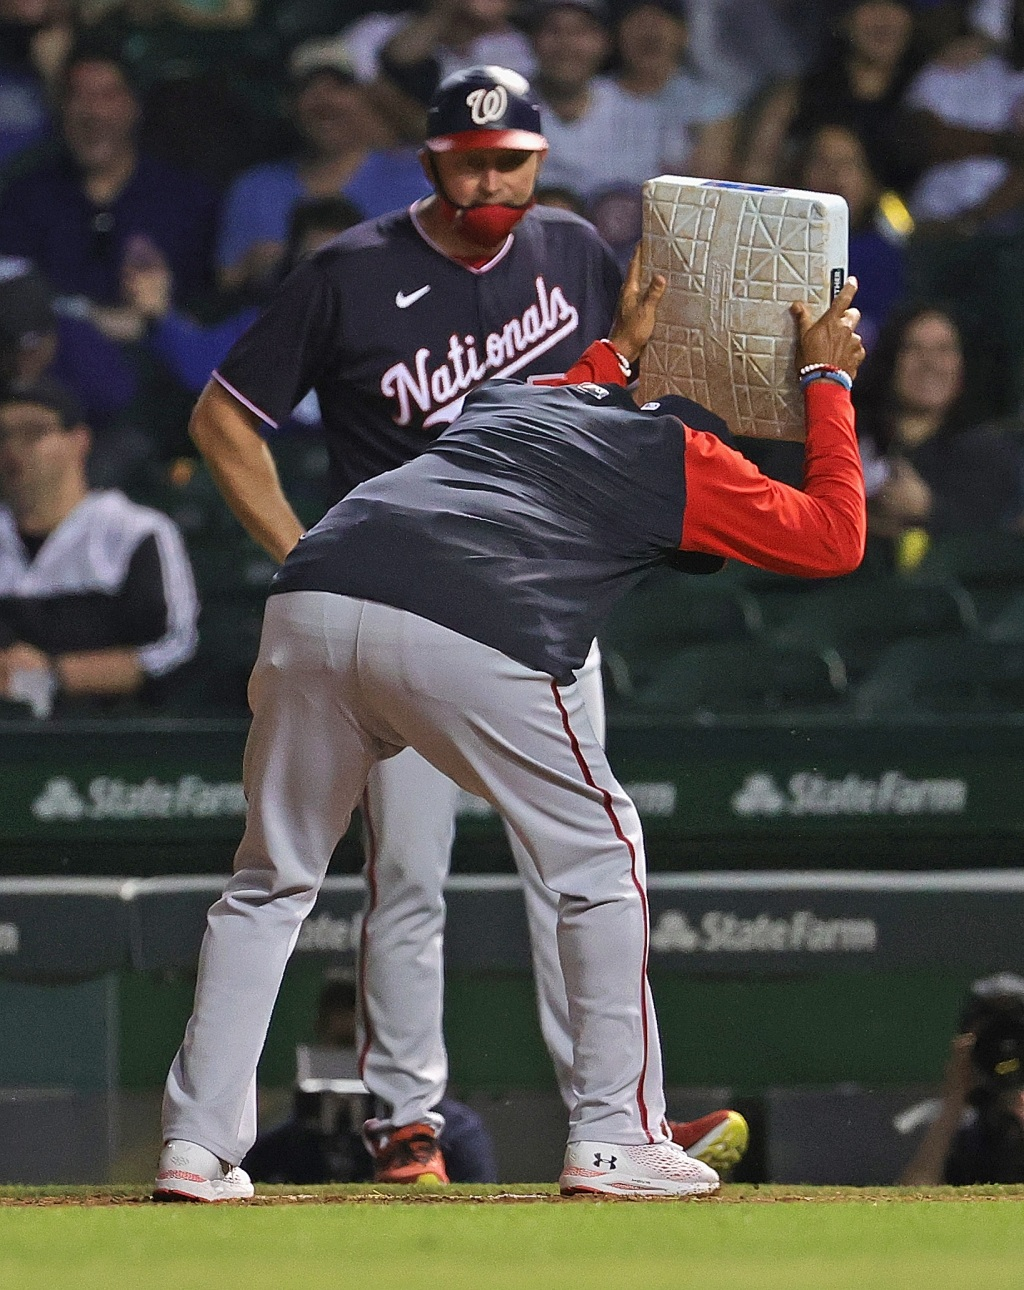 Nationals manager Dave Martinez ejection throws first base